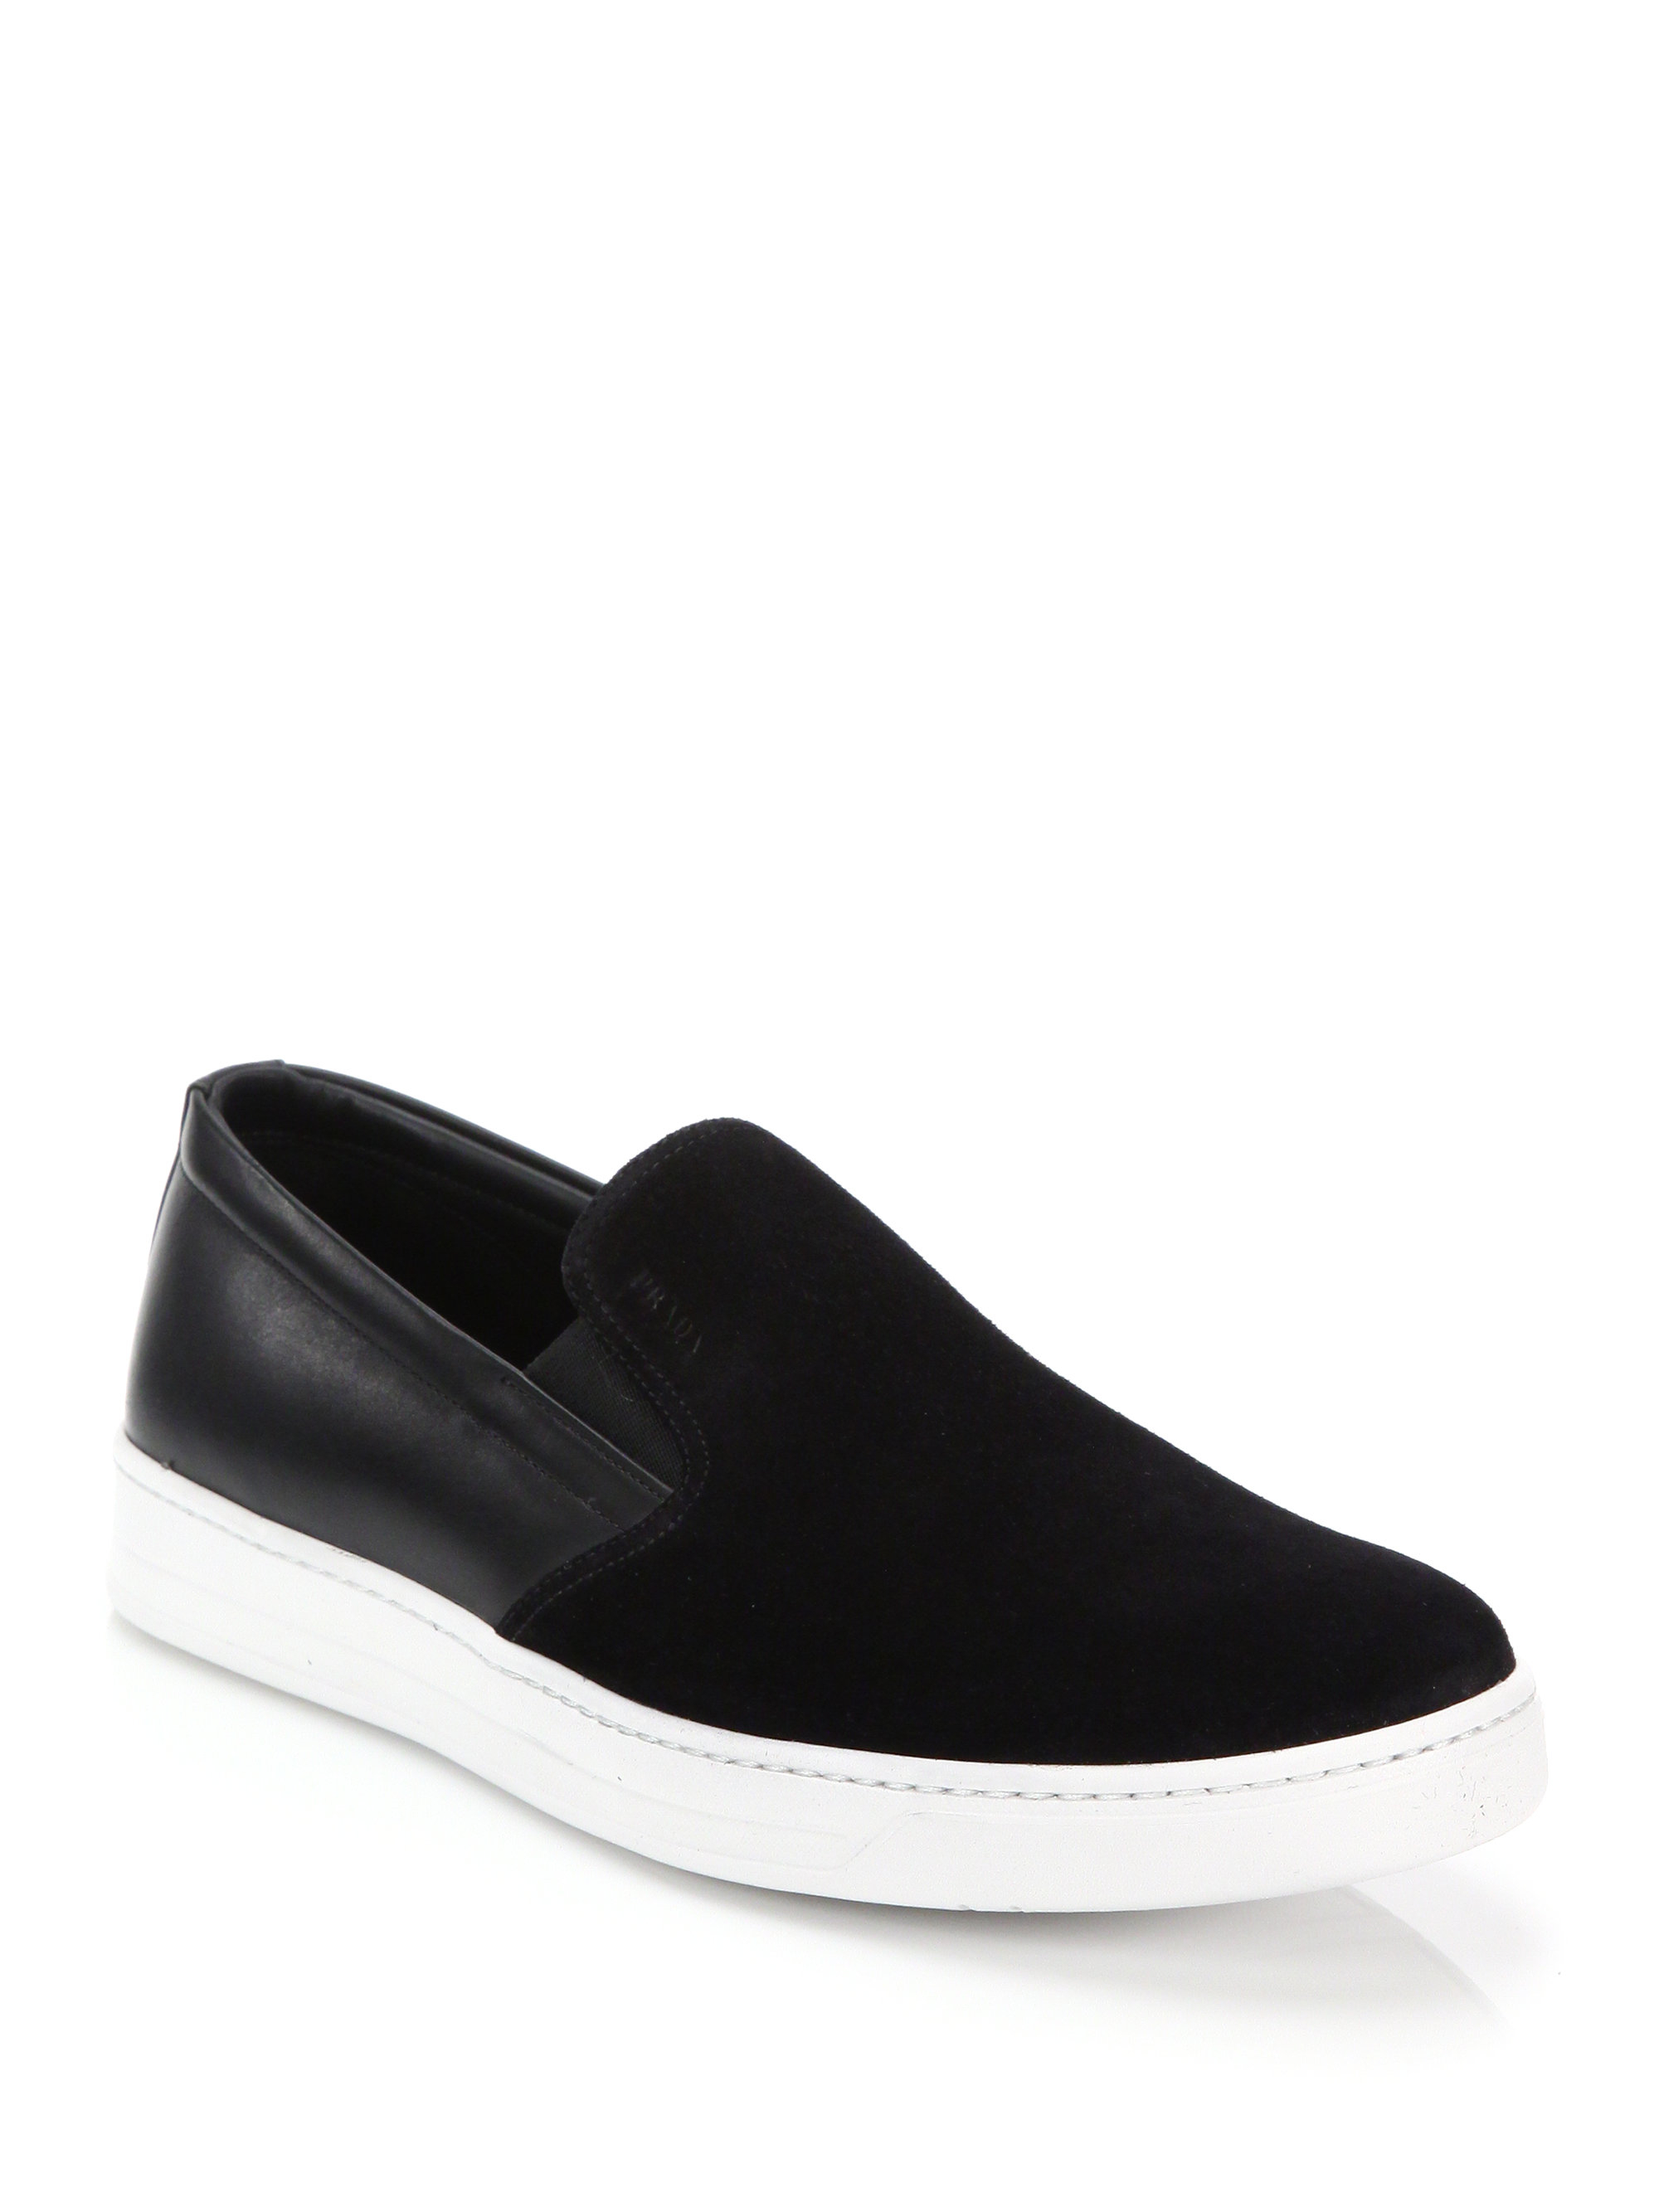 Free Shipping & the largest selection of Grasshoppers shoes for women at exeezipcoolgetsiu9tq.cf Find extended widths in our casual shoes, sneakers, slipons, wedges & sandals.